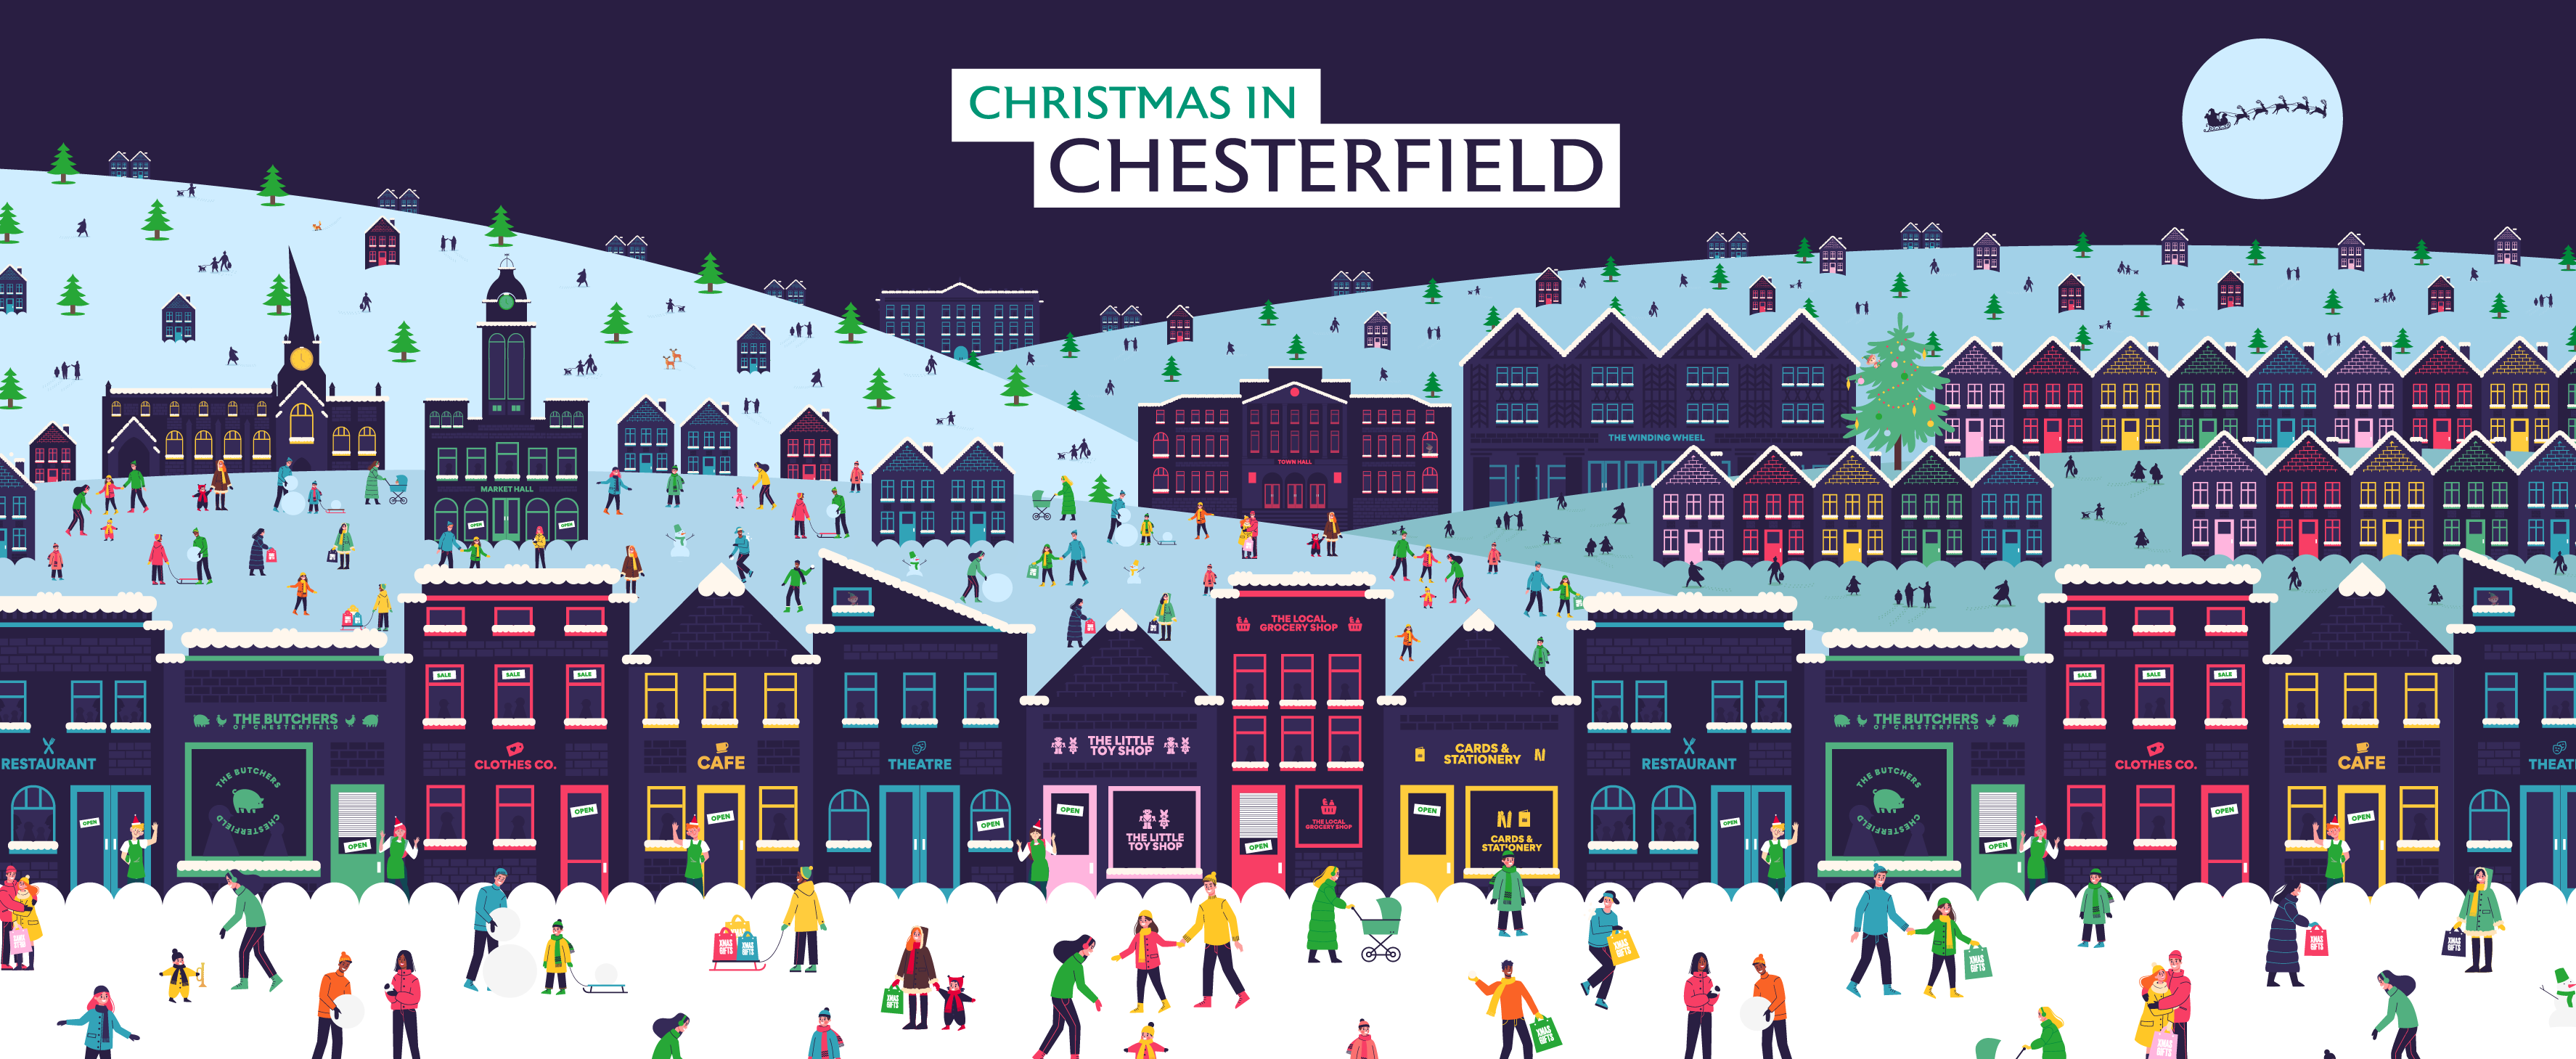 Christmas in Chesterfield - What's on